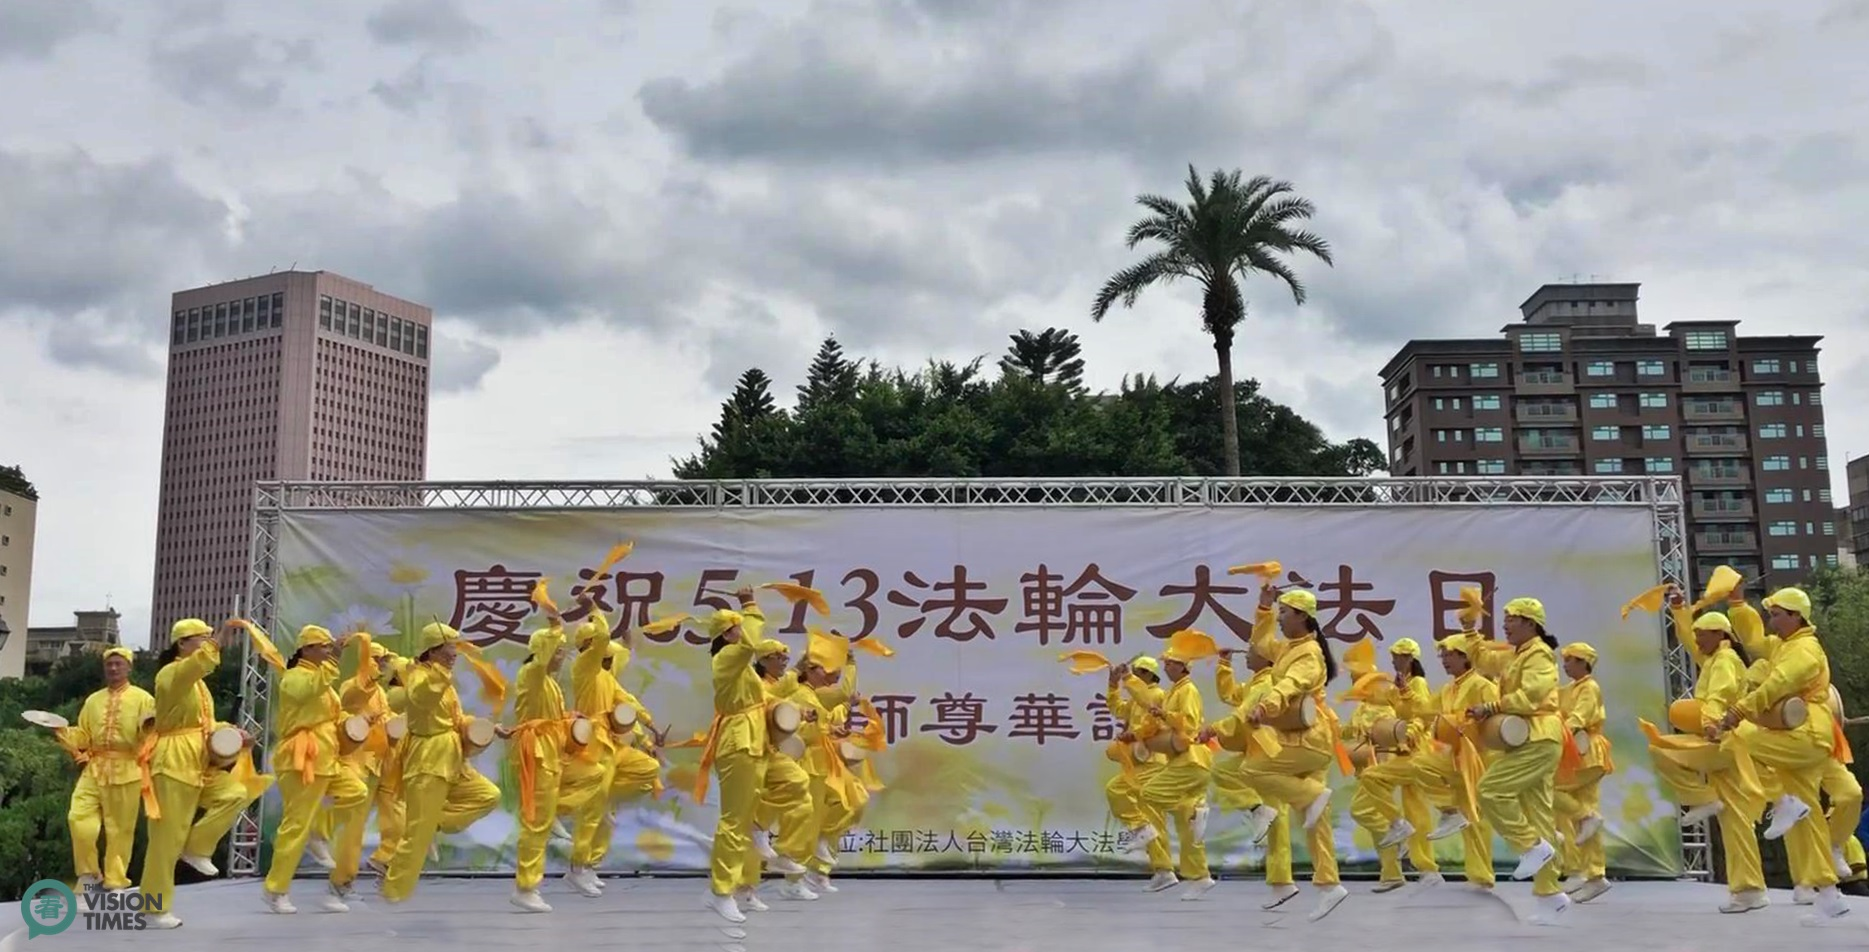 Falun Gong Waist Drum Team performs at 2019 World Falun Dafa Day in Taipei. (Image: Billy Shyu / Vision Times)